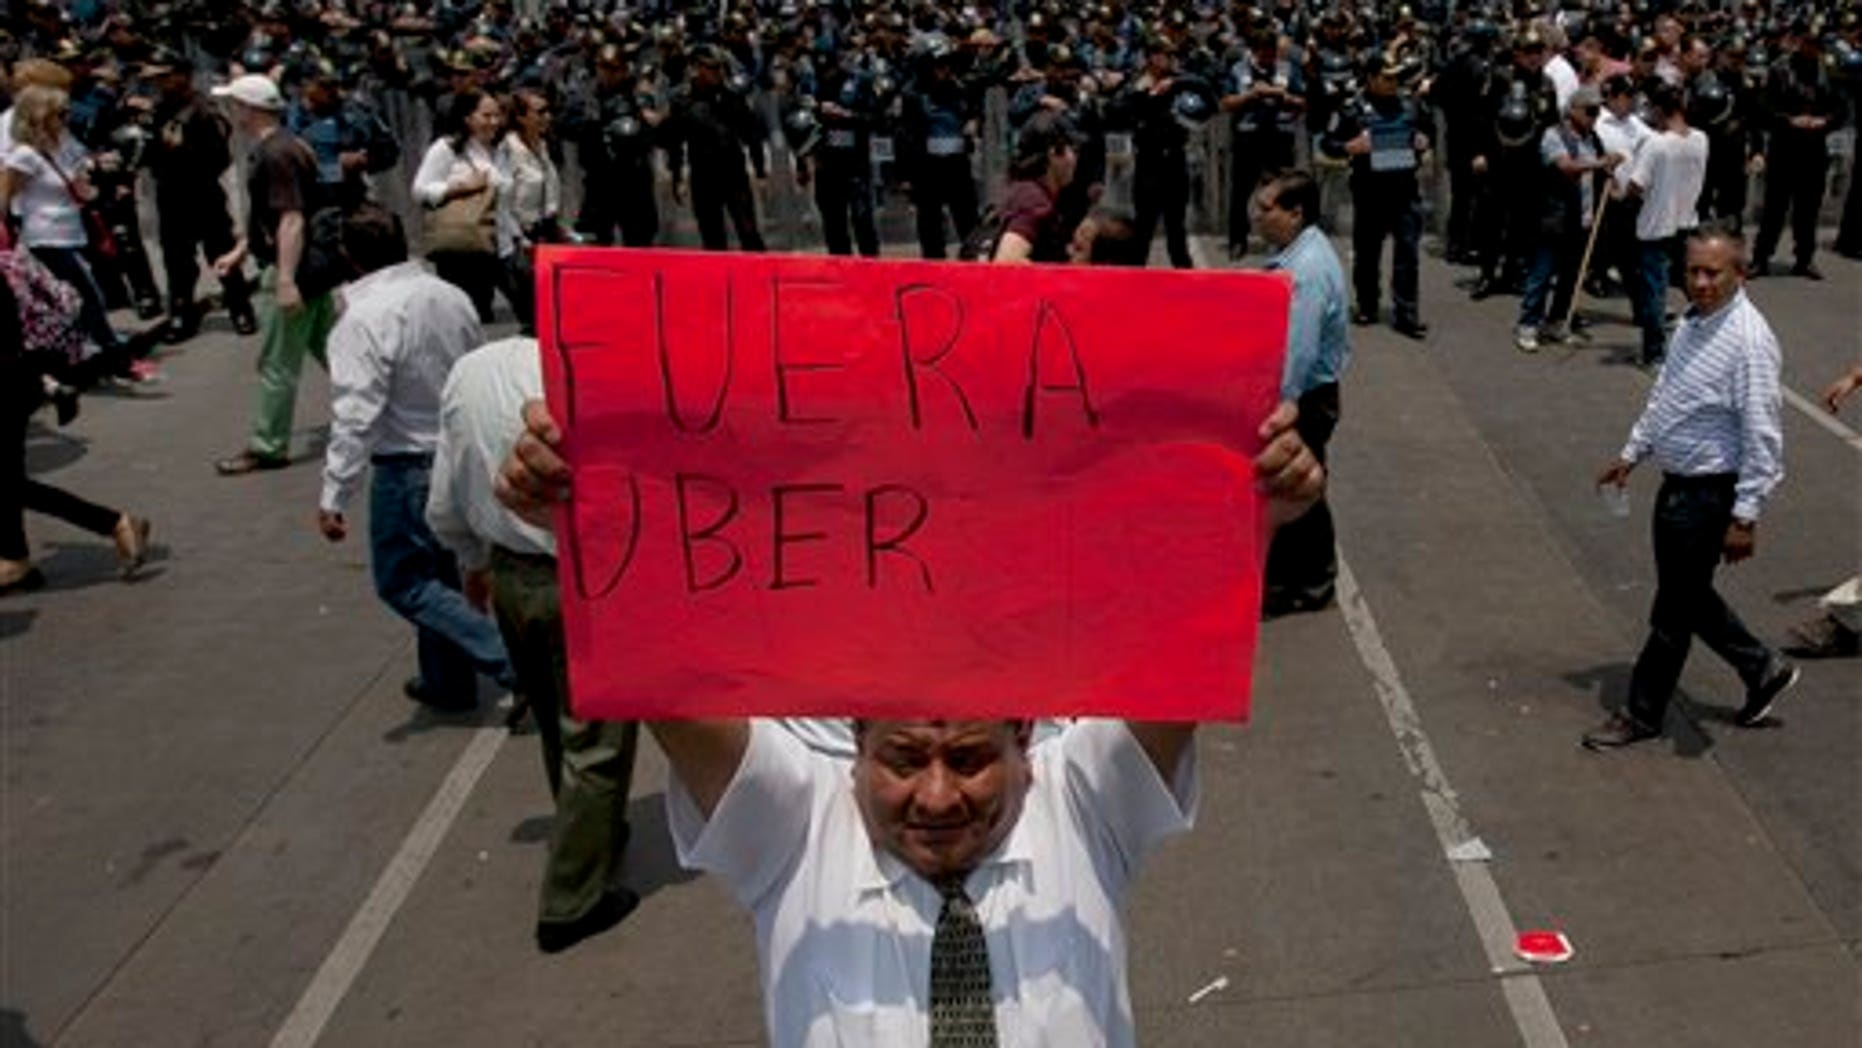 """A man holds a sign the reads in Spanish """"Uber Out"""" in front of a phalanx of riot police as thousands of taxi drivers blocked the main streets in Mexico City, Monday, May 25, 2015. The Mexican taxi drivers' union called for a protest against unlicensed and UBER taxis working in Mexico City. (AP Photo/Marco Ugarte)"""